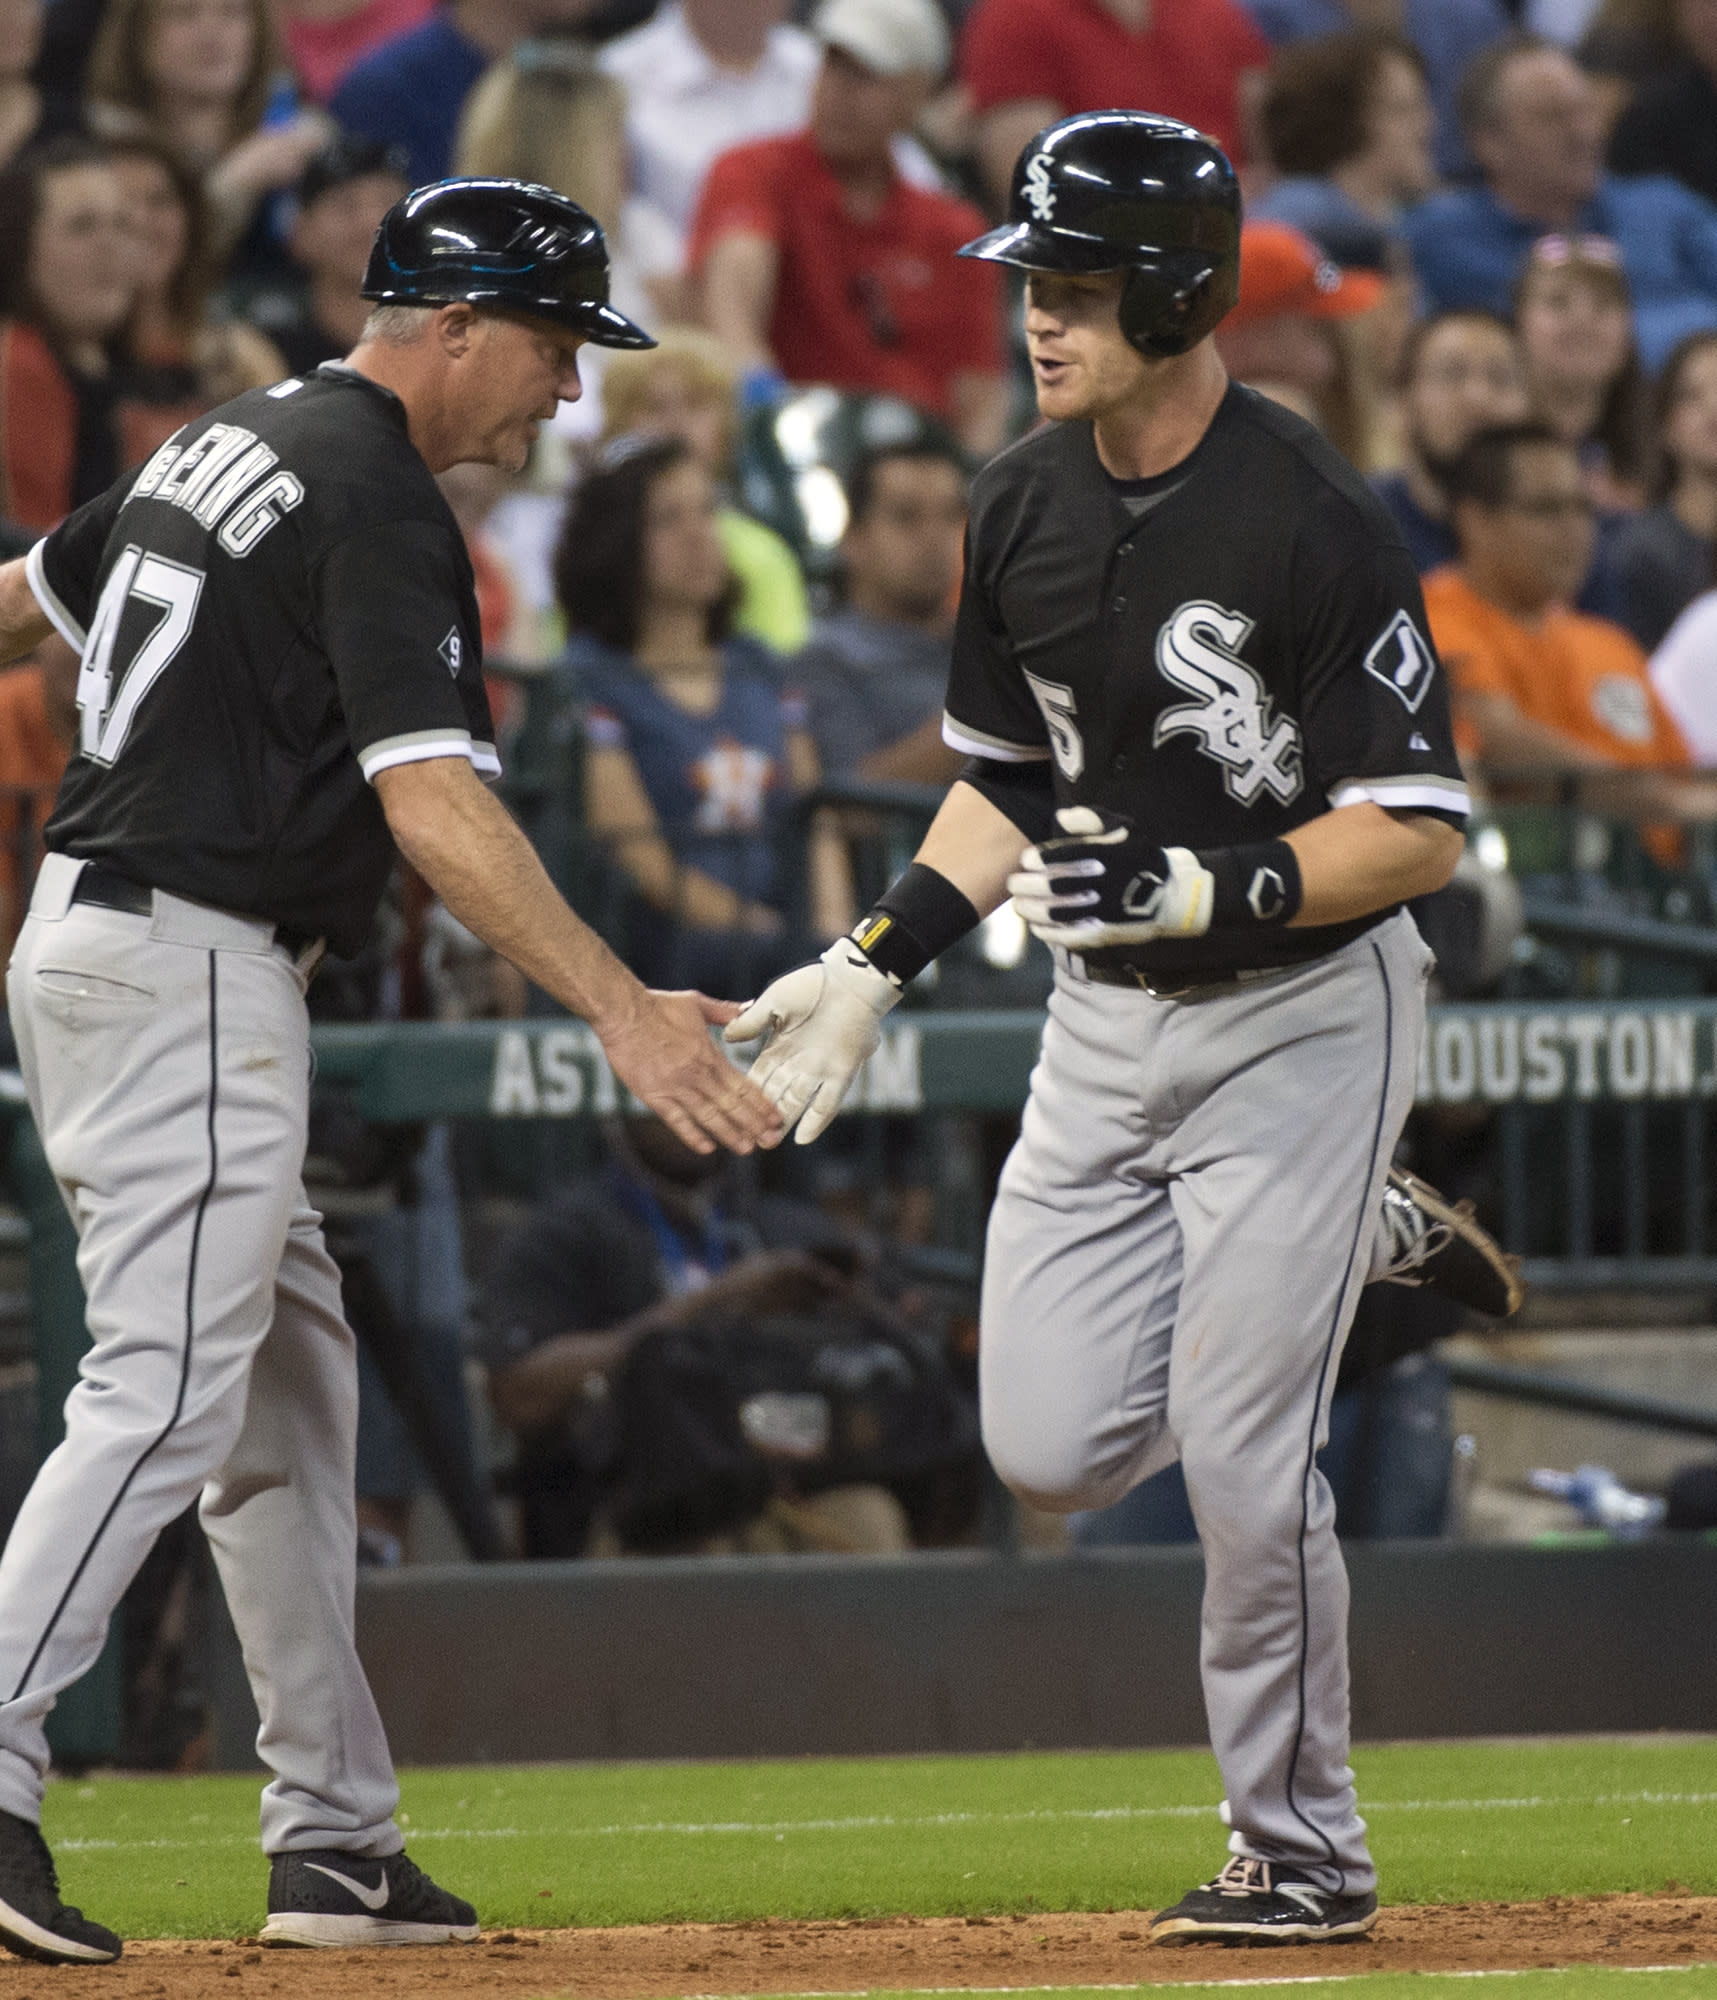 Soto's double helps White Sox over Astros 6-3 in 11 innings